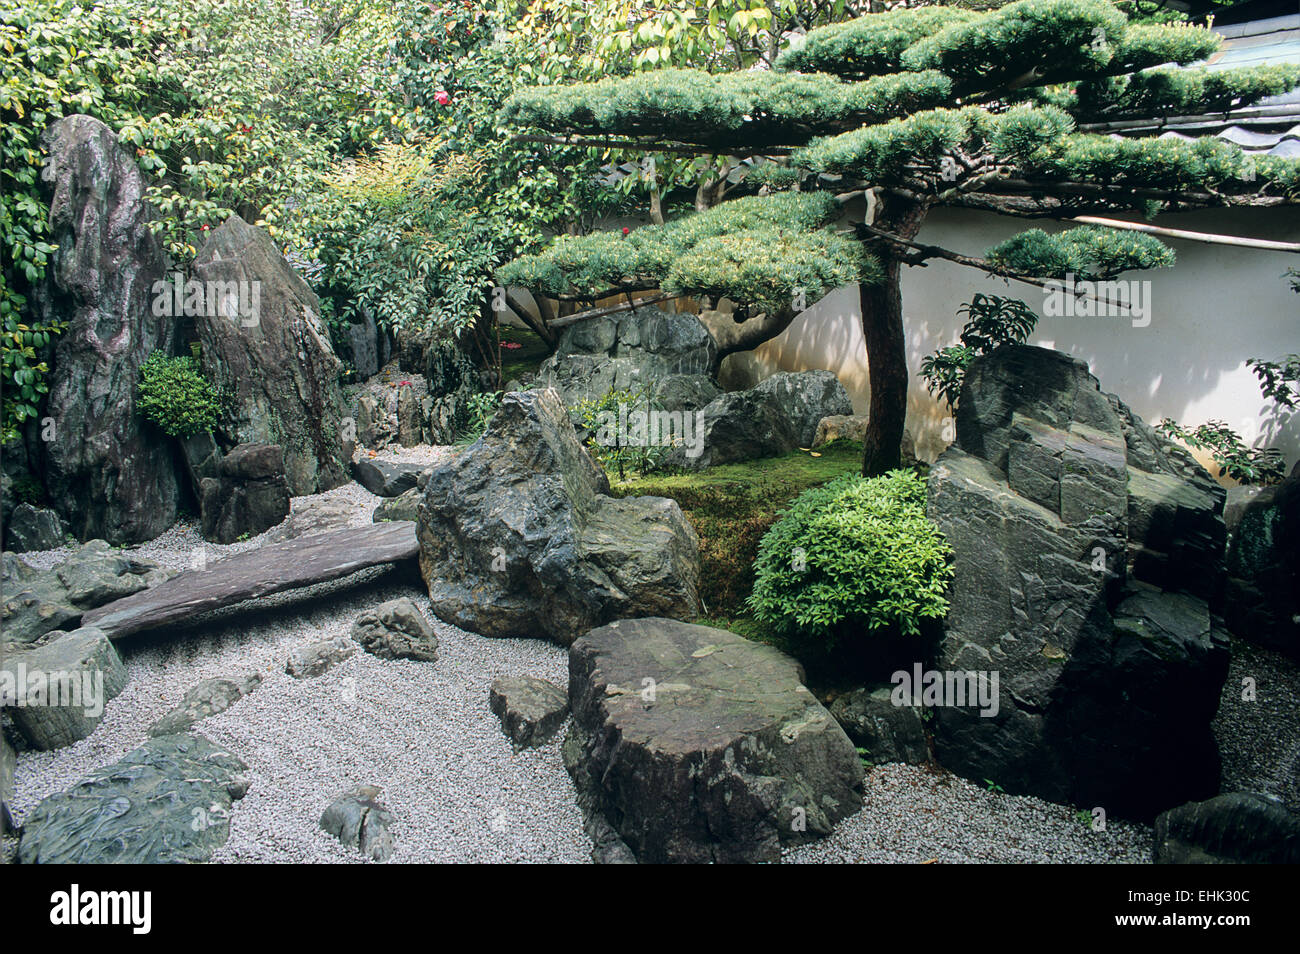 This Zen garden landscape of stones, pines and a dry stream is one of the most famous Japanese garden arramngements - Stock Image